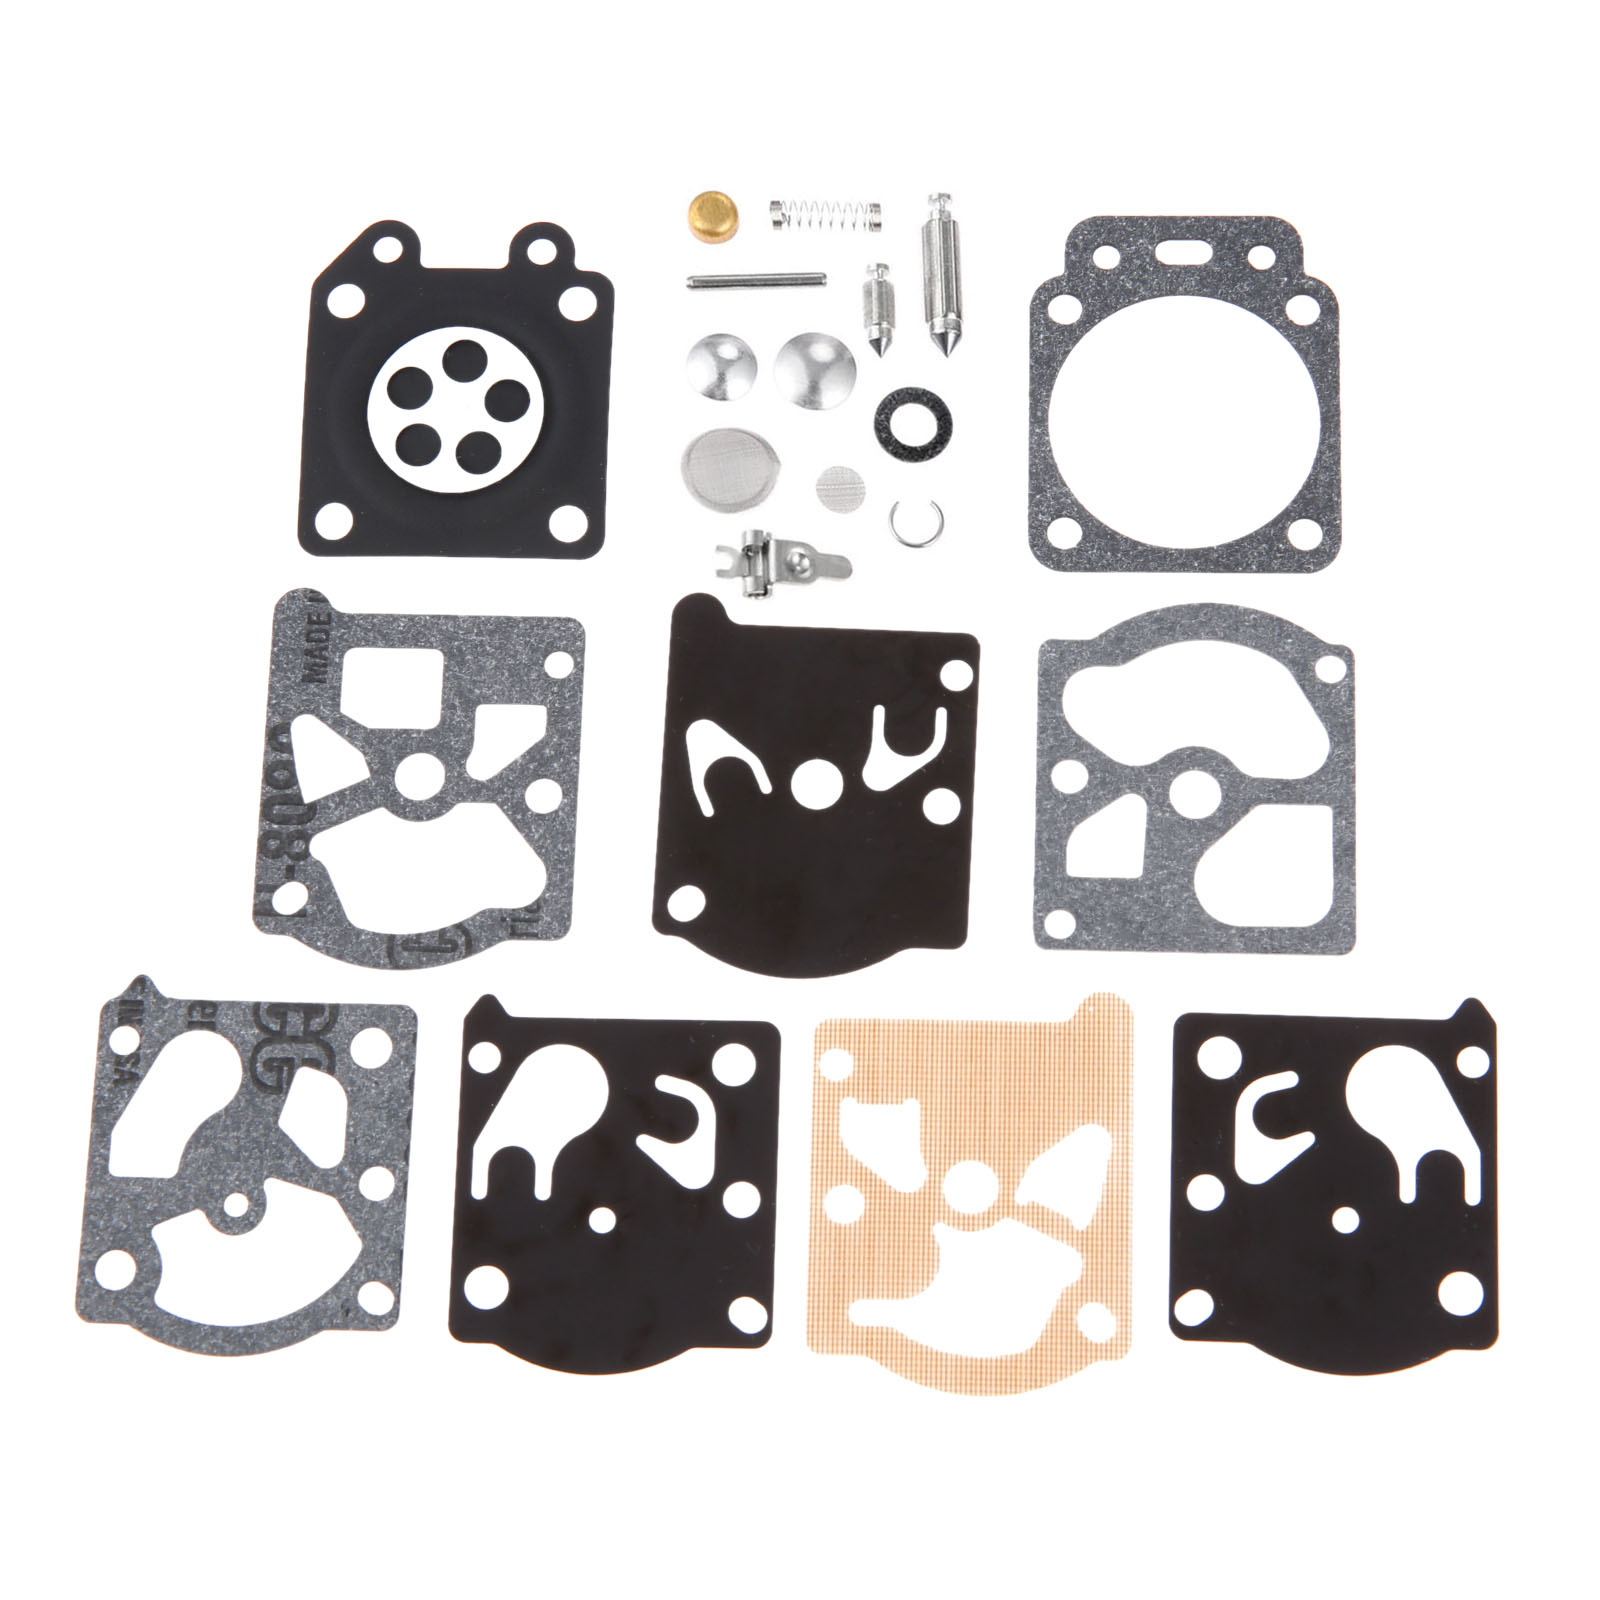 DRELD Carburetor Rebuild Kit for Walbro WT-669 WT-626 WT-274 WT-775 K24-WAT Carb String Trimmer Brush Cutter Chainsaw Parts